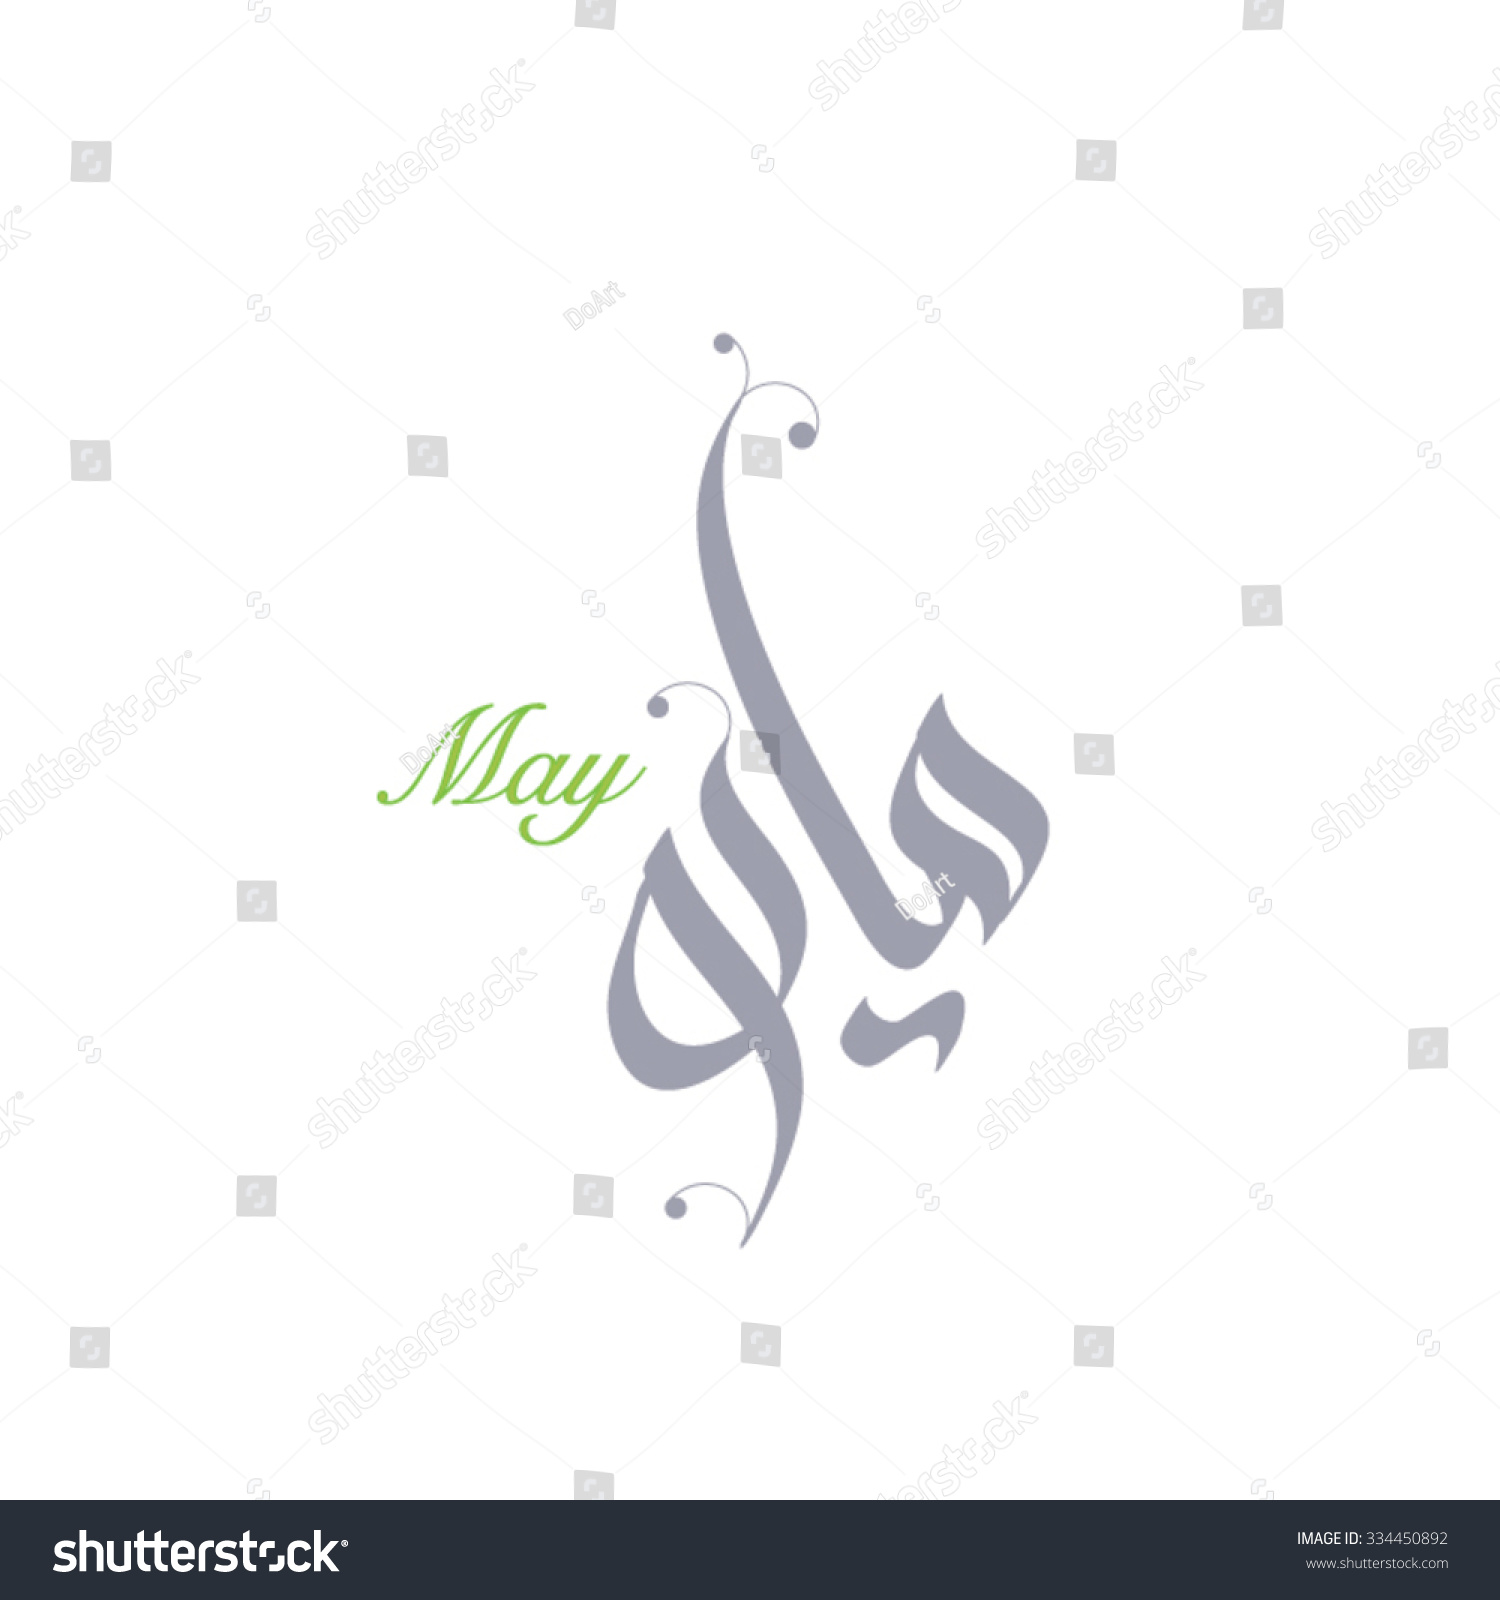 May in arabic calligraphy style it is a vector type file and can be used for calendar design it is reflecting the current season color